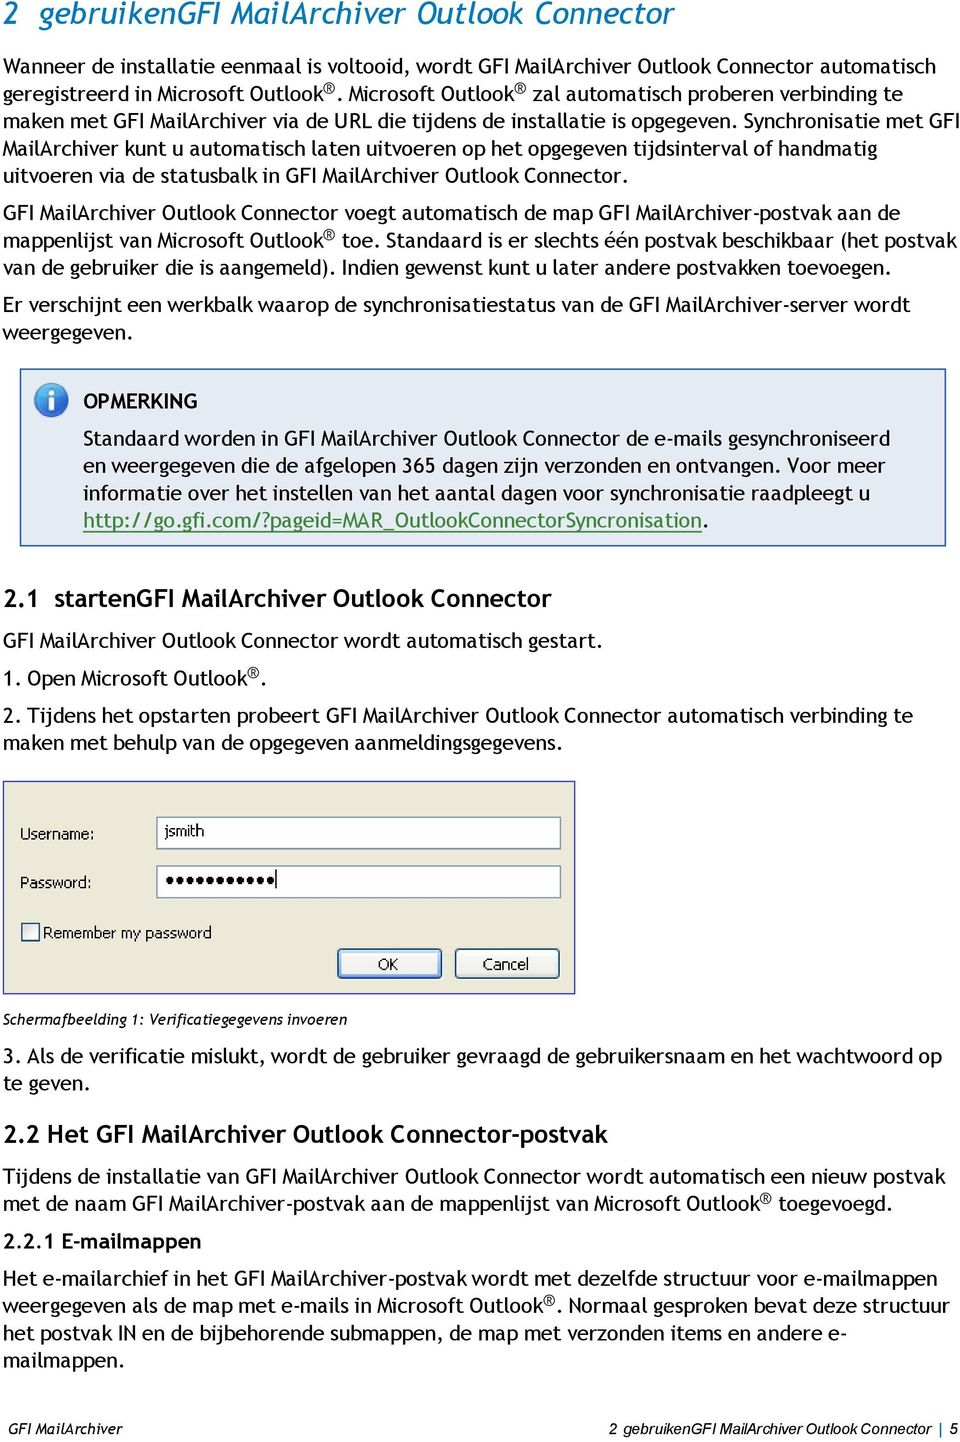 Synchronisatie met GFI MailArchiver kunt u automatisch laten uitvoeren op het opgegeven tijdsinterval of handmatig uitvoeren via de statusbalk in GFI MailArchiver Outlook Connector.